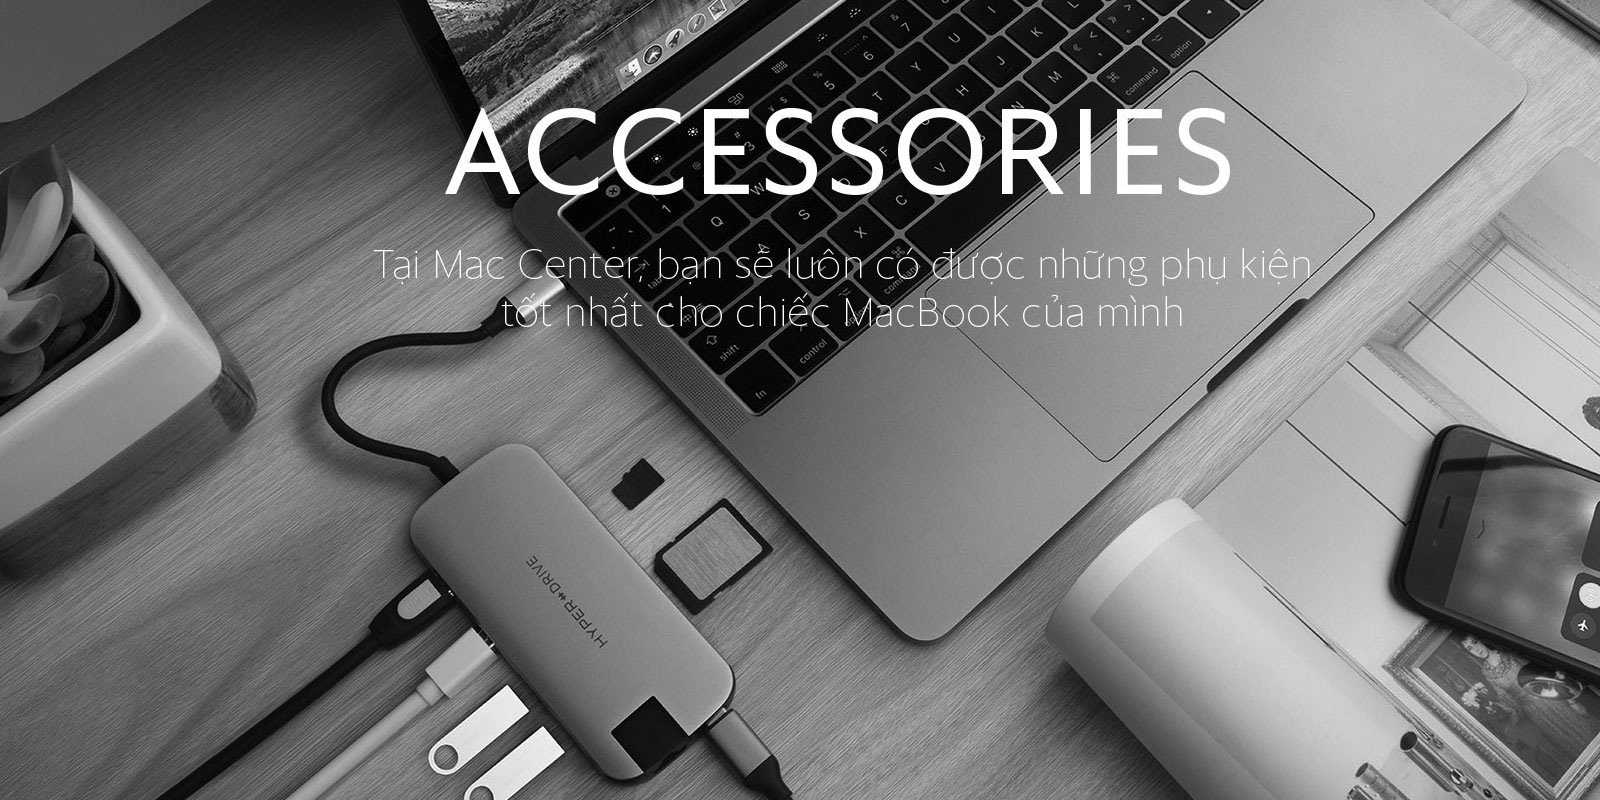 Mac Center Accessories